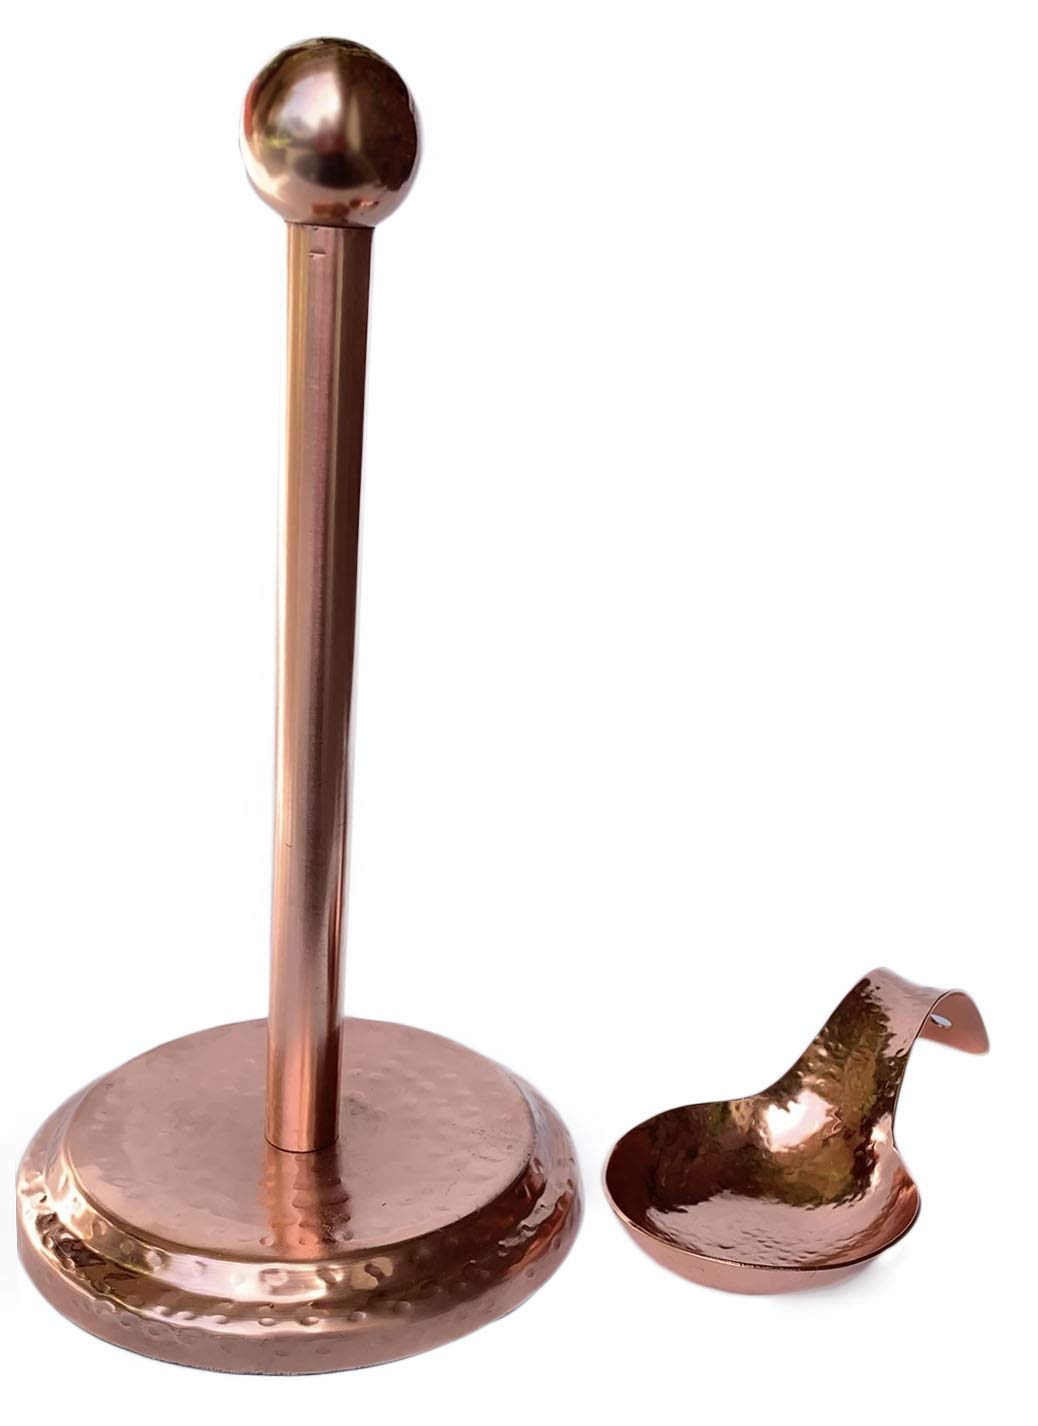 Hammered Copper Spoon Rest and Paper Towel Holder by Tapps Home Décor Line